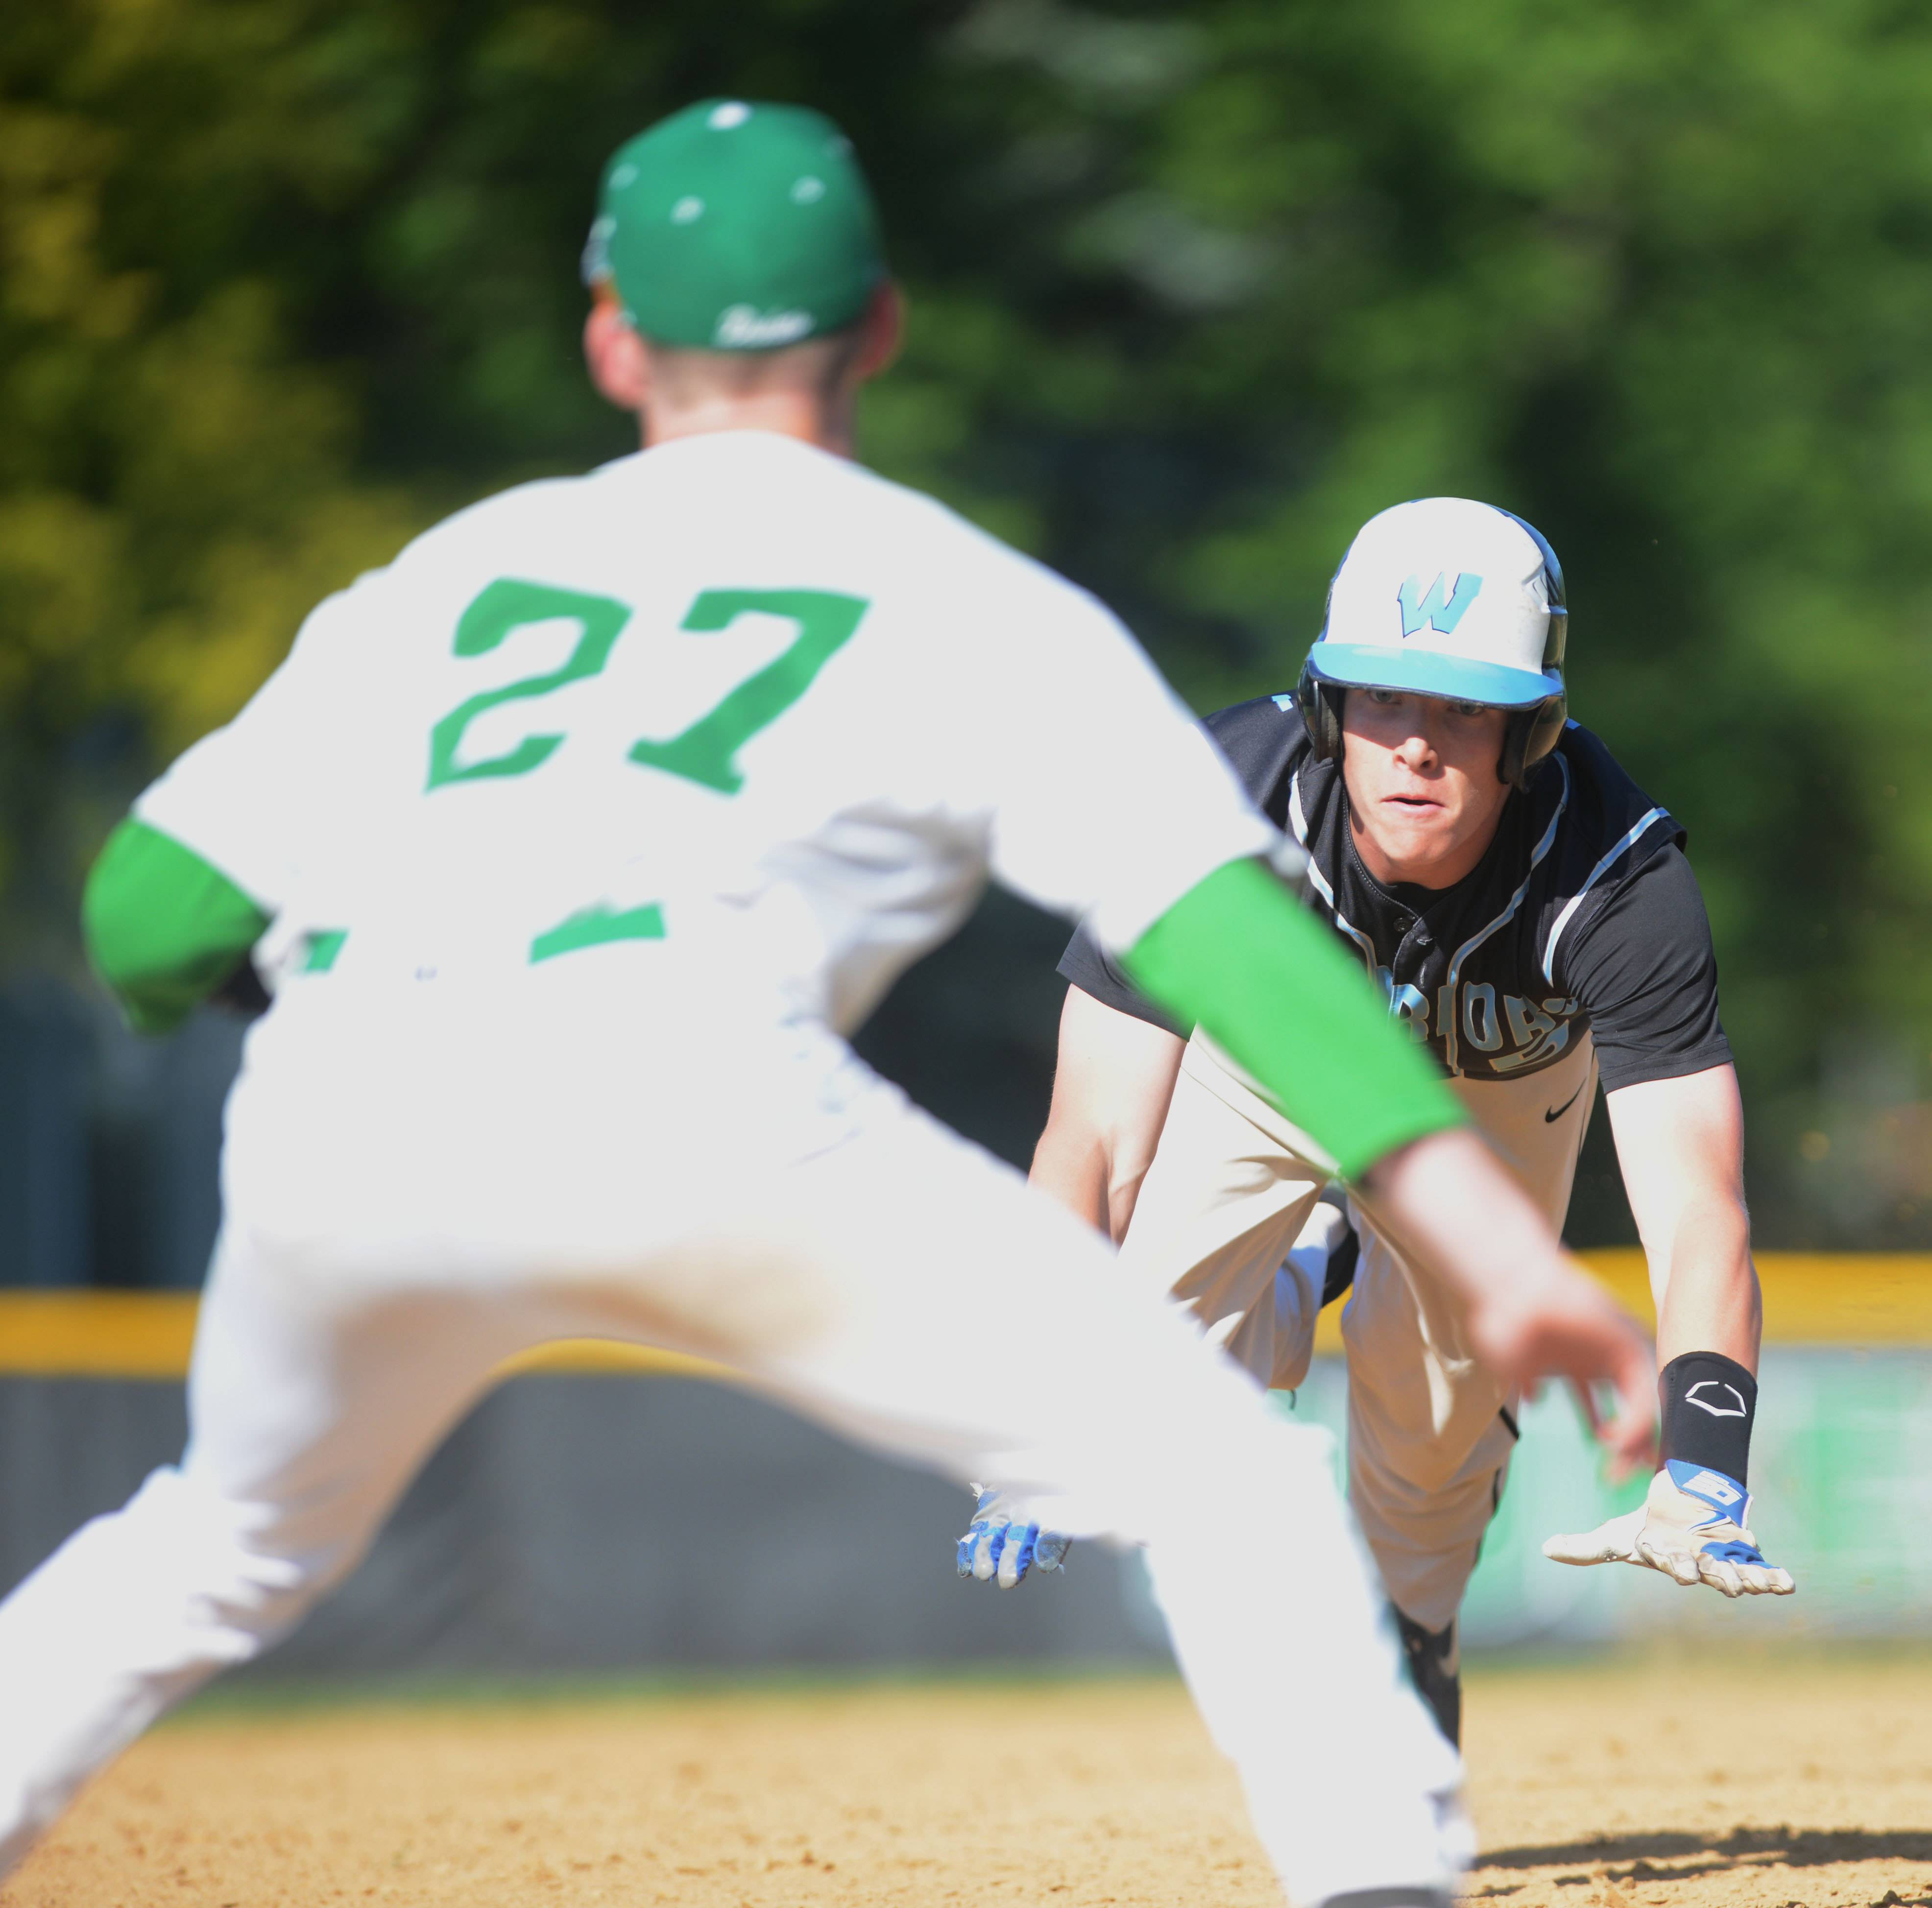 Mike Homan of York  gets ready for Brian Johnson of Willowbrook as he slides into third base .